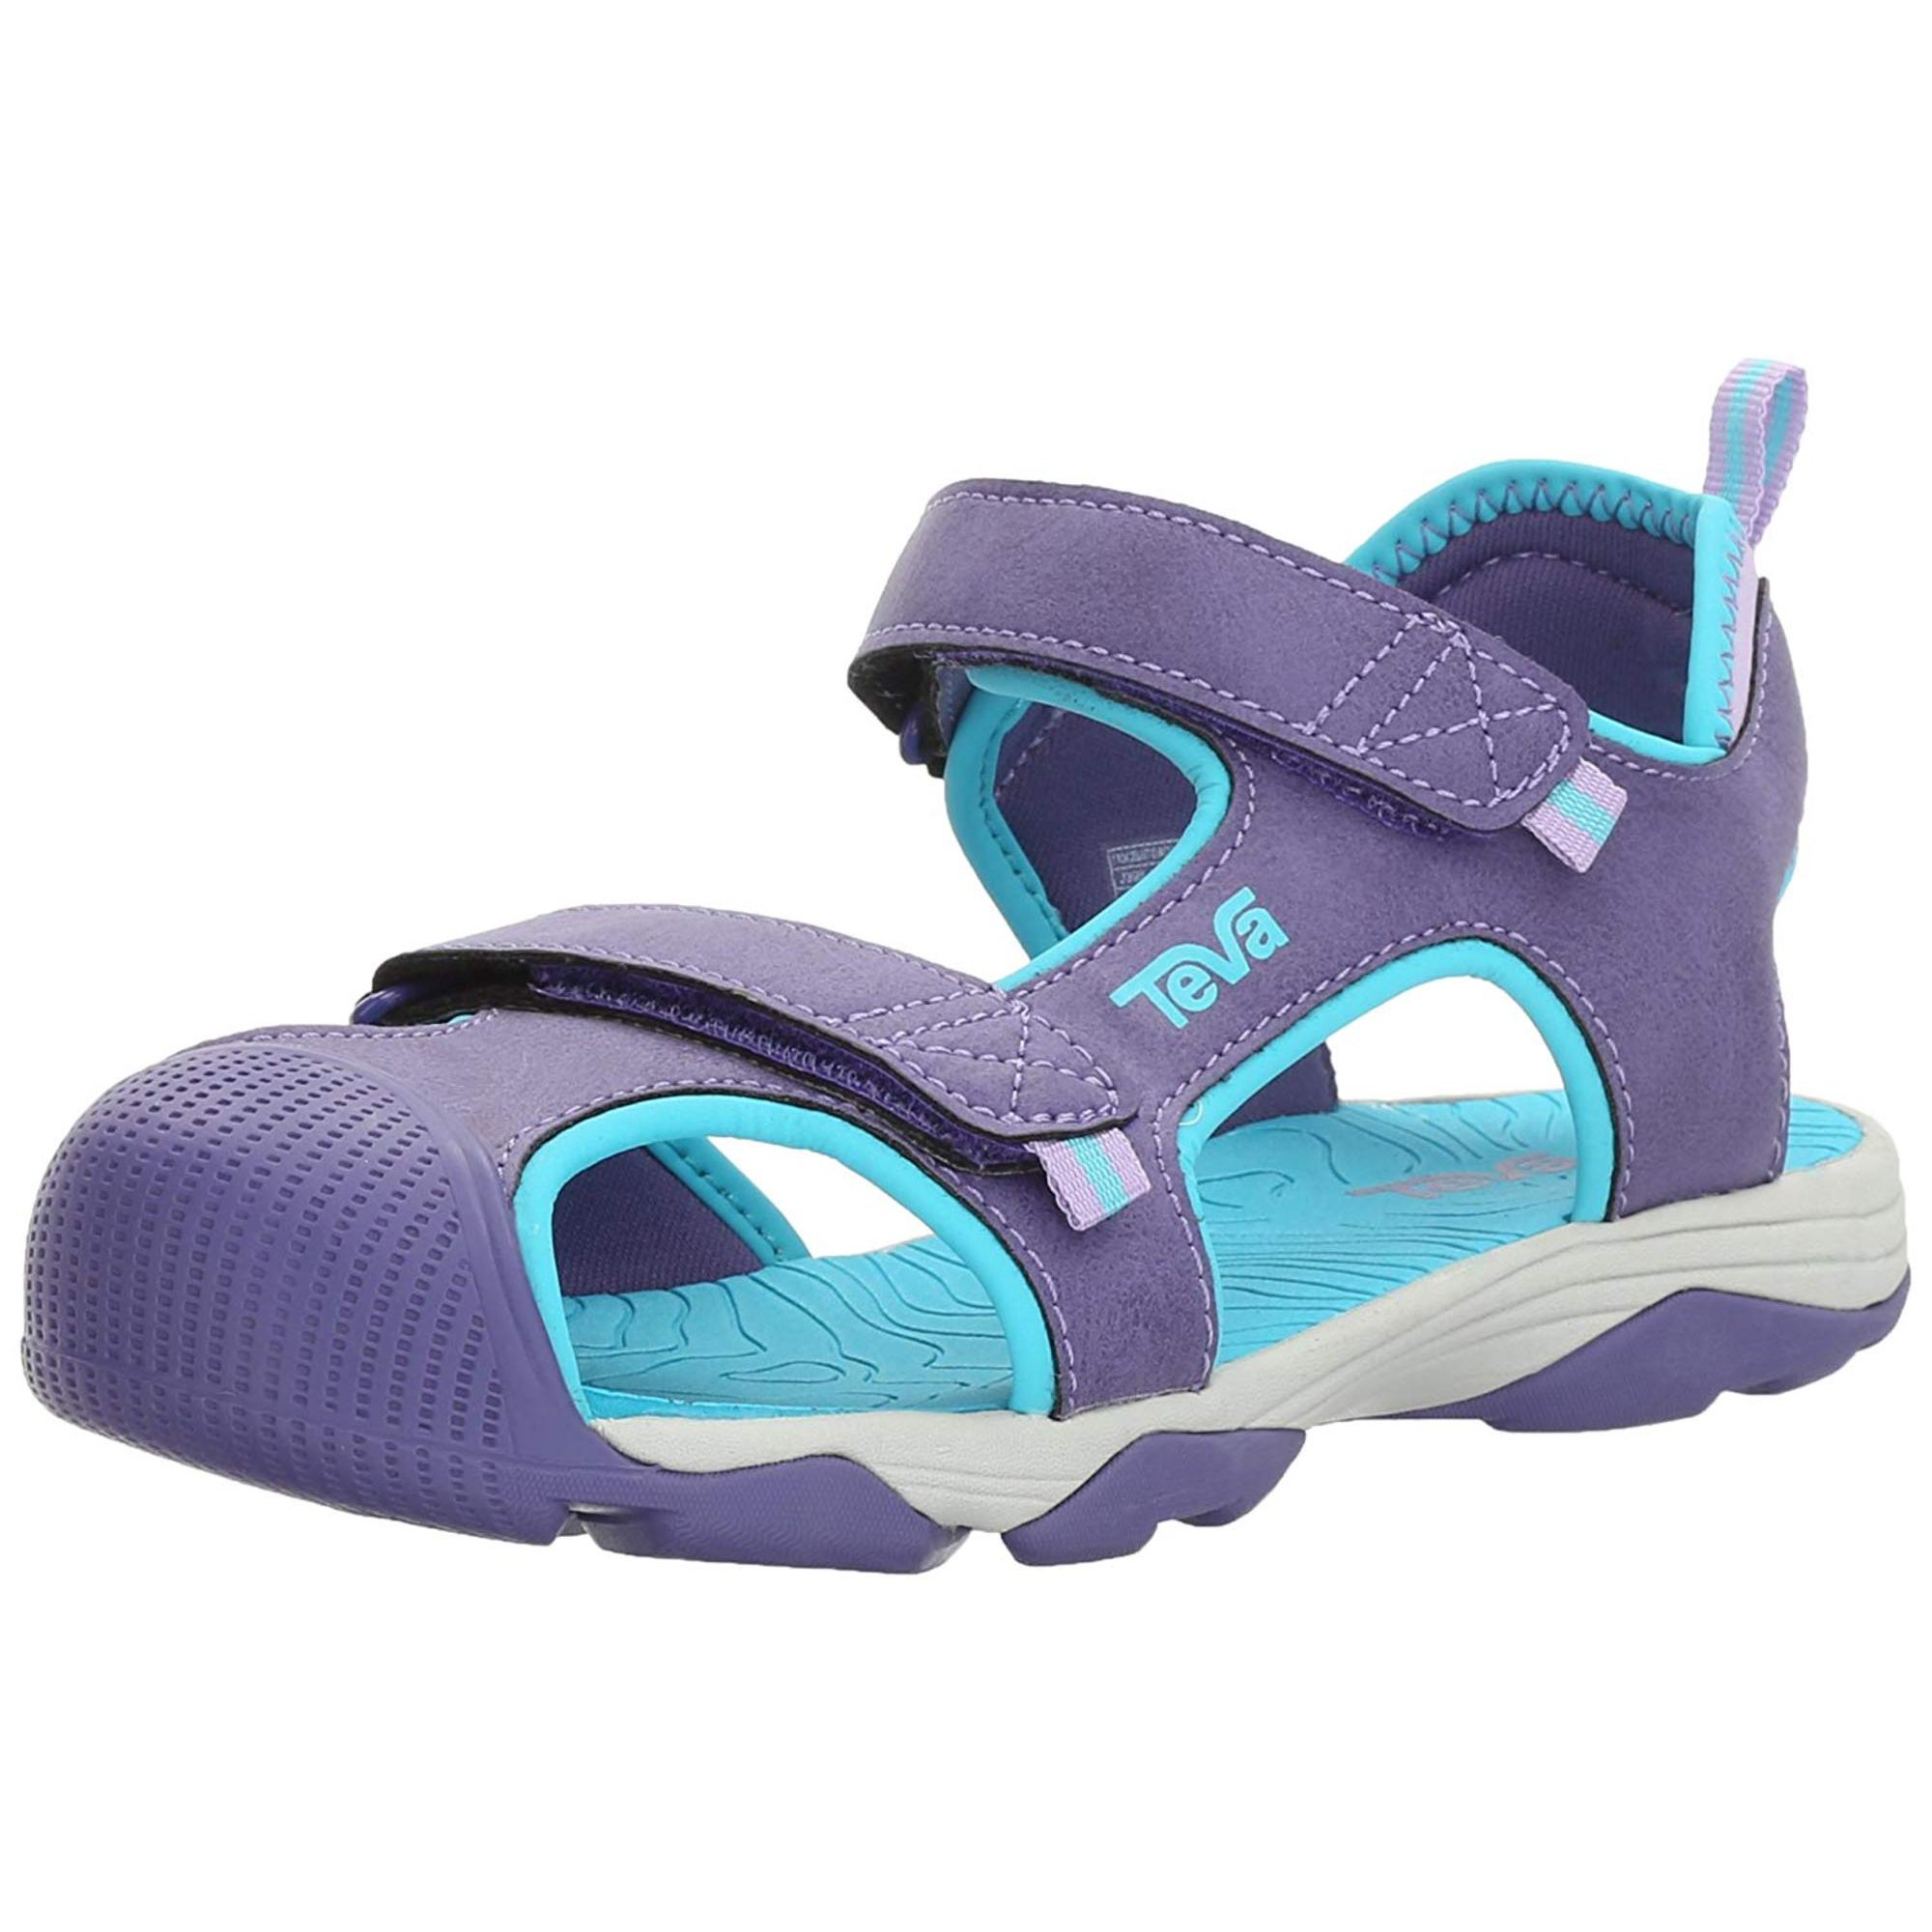 aff6ae0c7 Kids Teva Girls Toachi 4 Slide